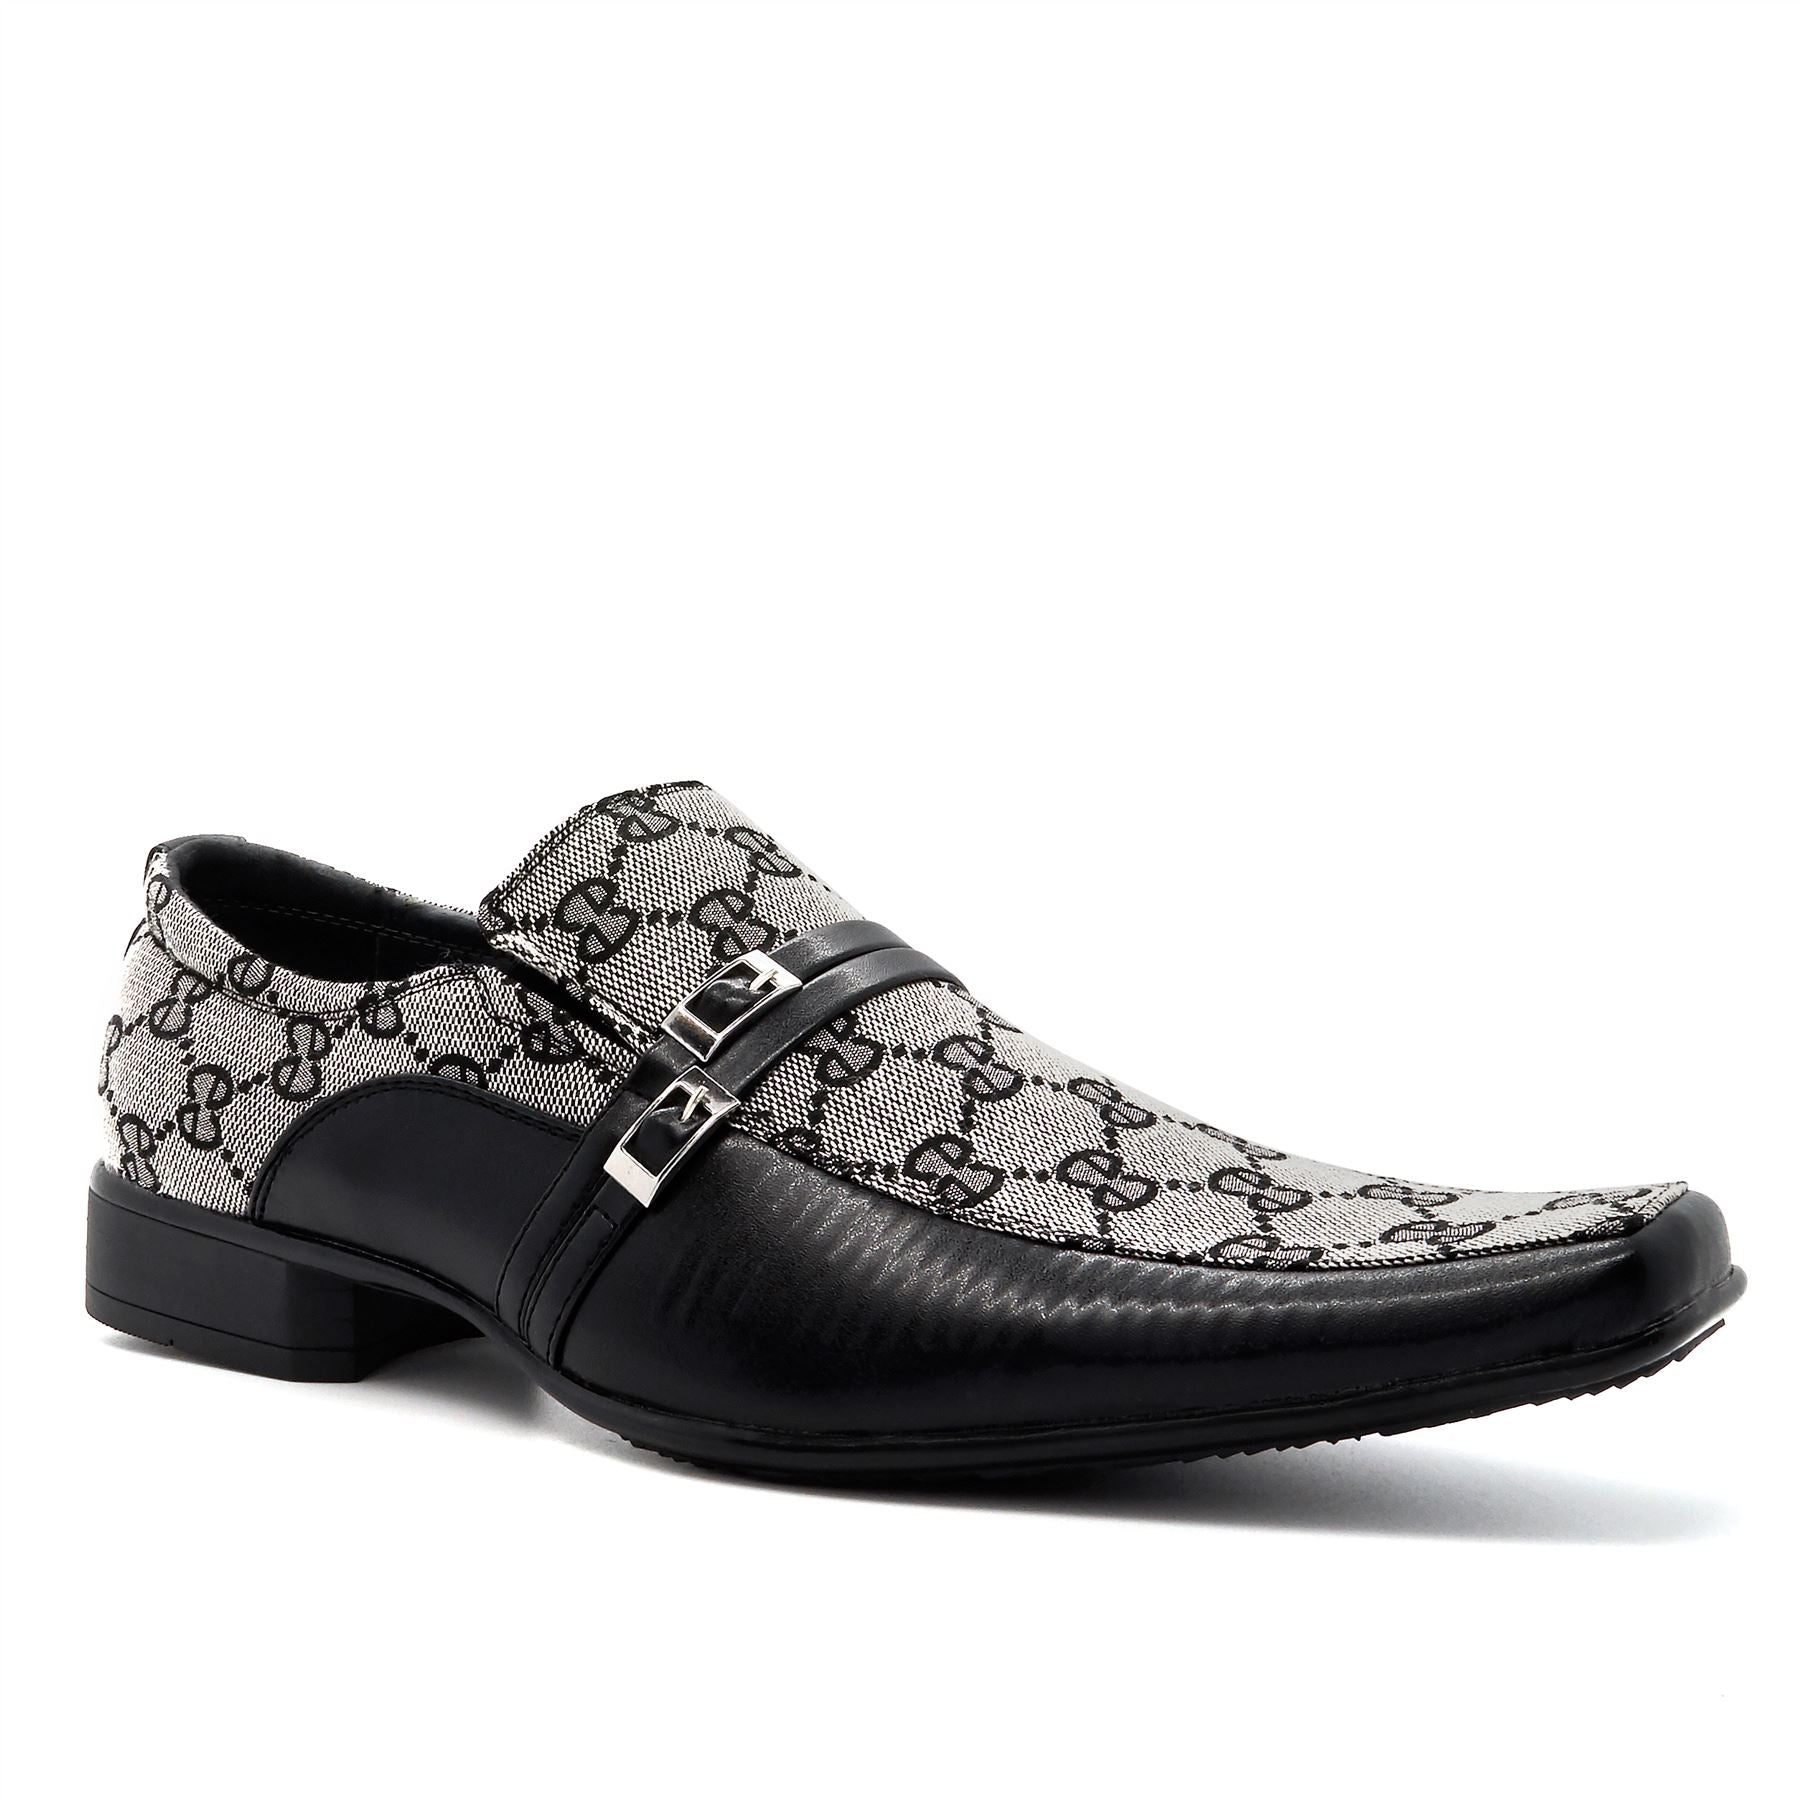 Black & White Diamond Pattern Slip On